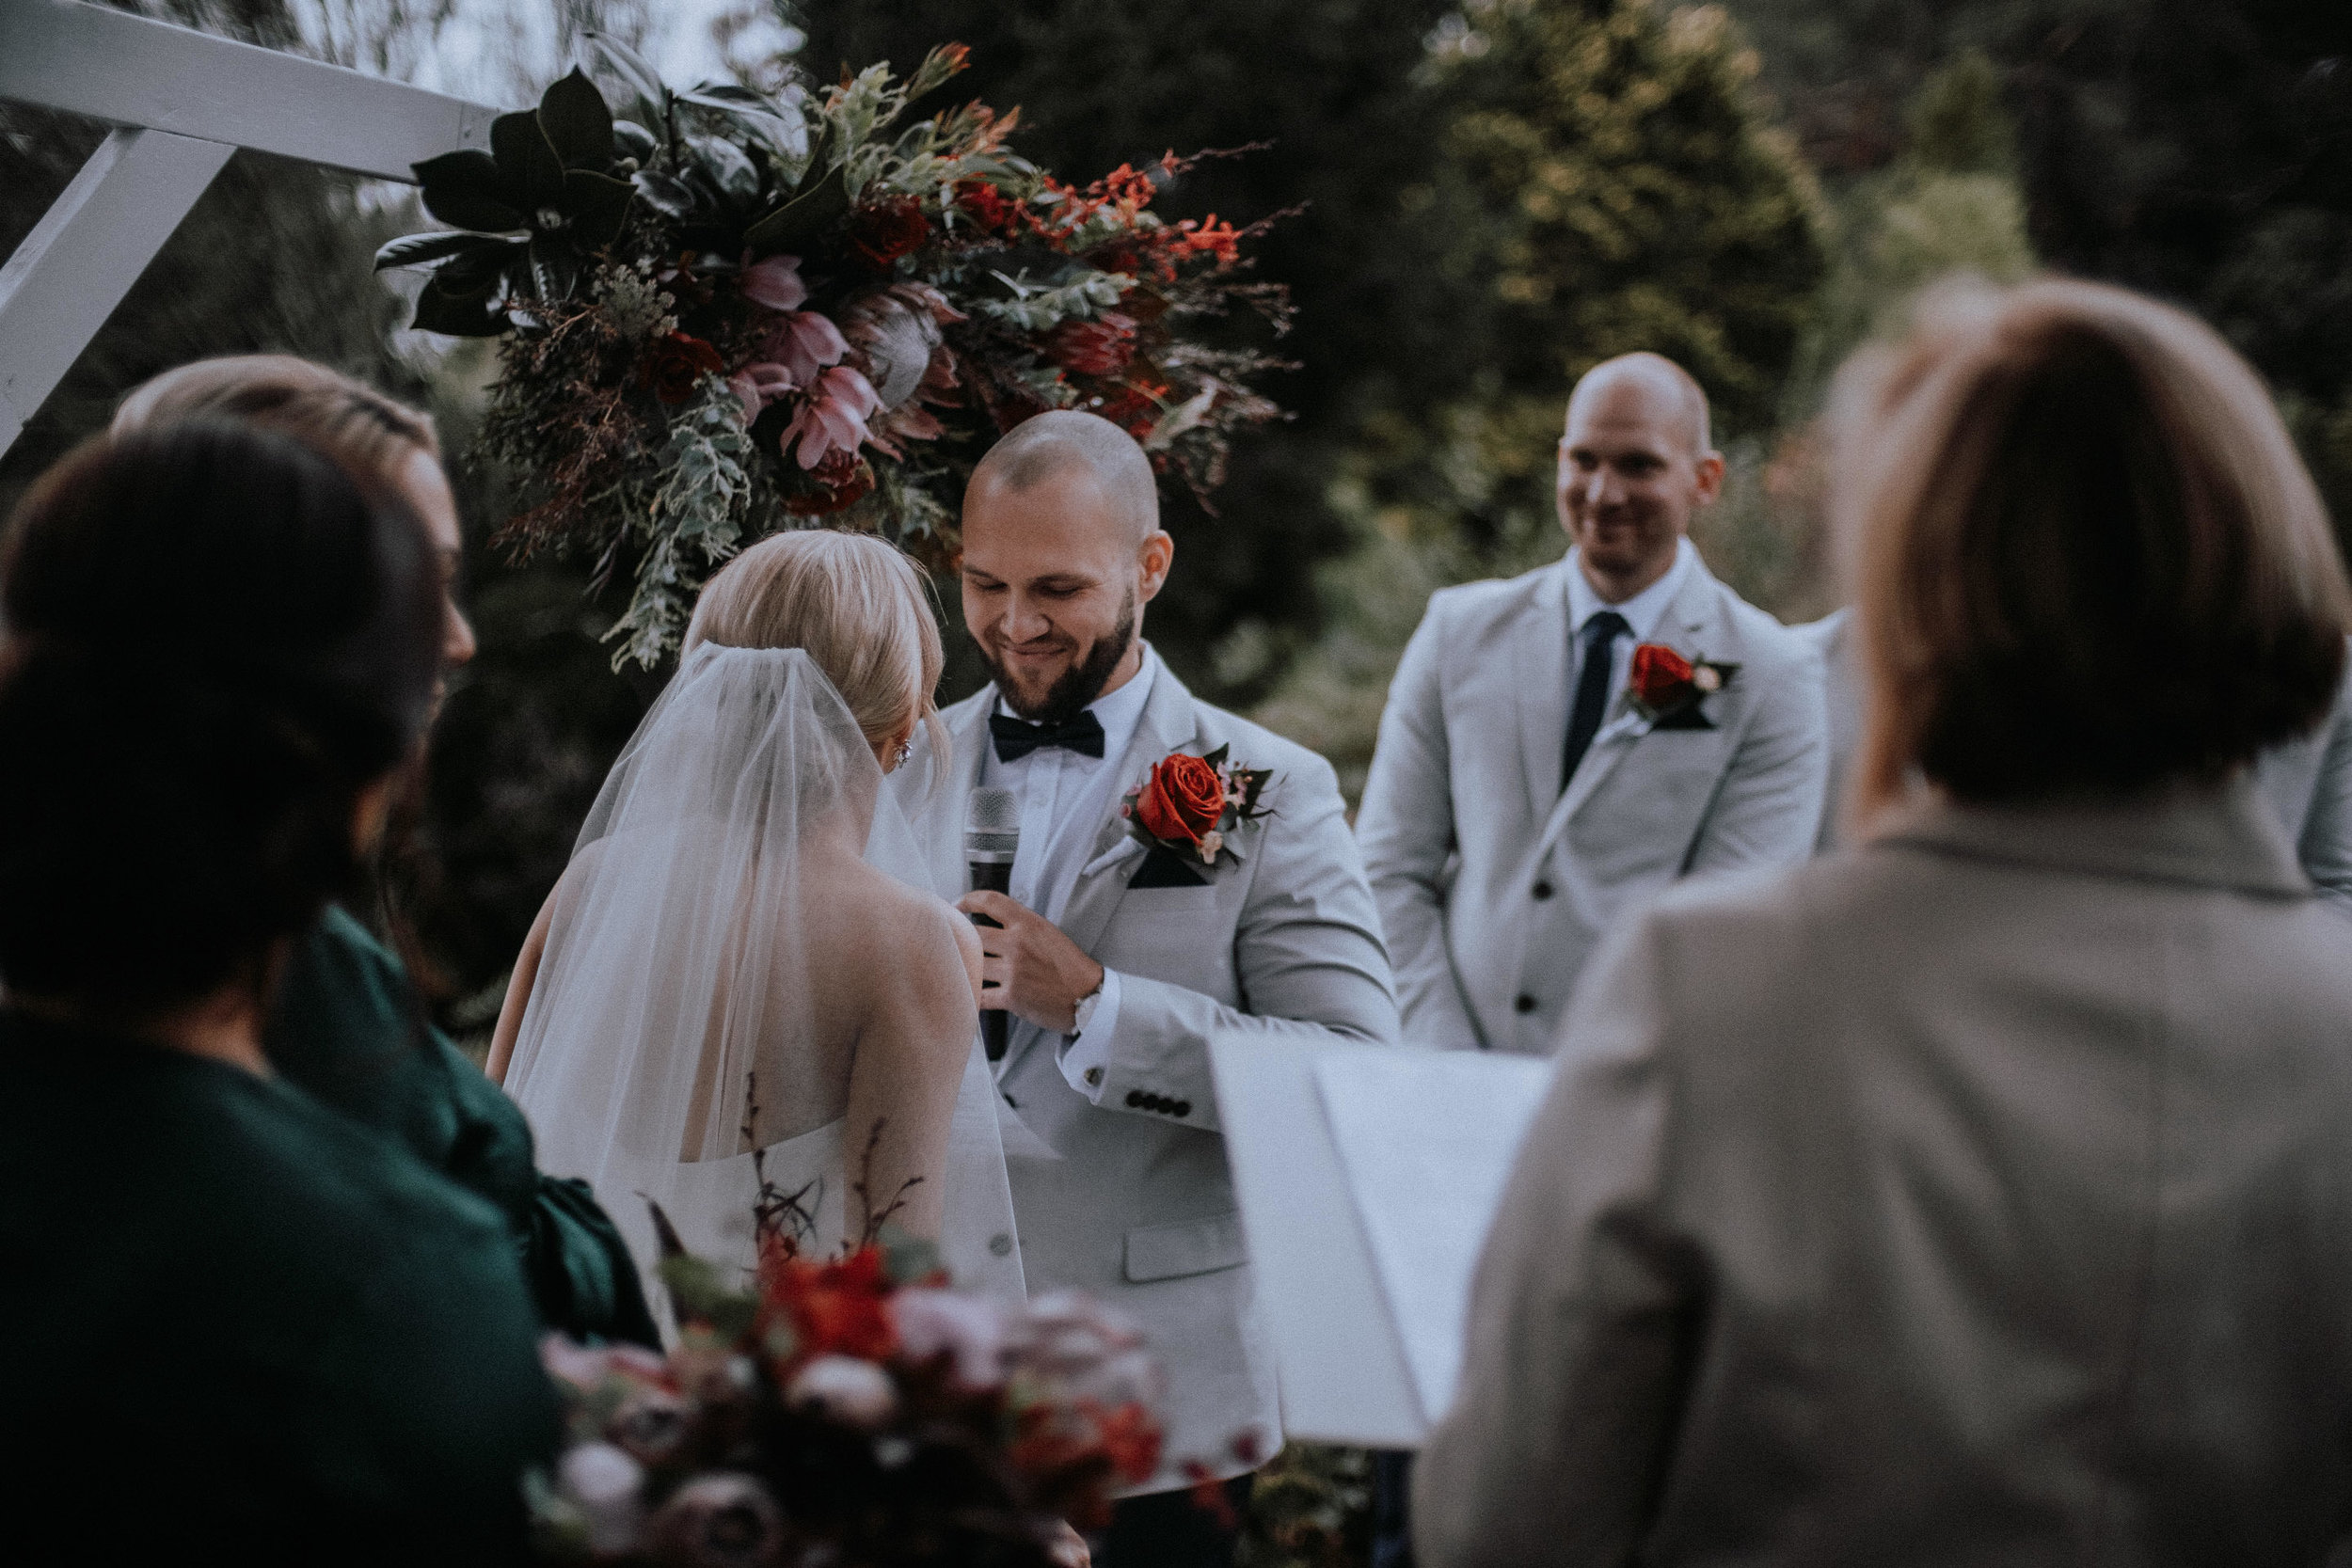 An outdoor winter wedding ceremony at Mt Tomah Botanic Gardens